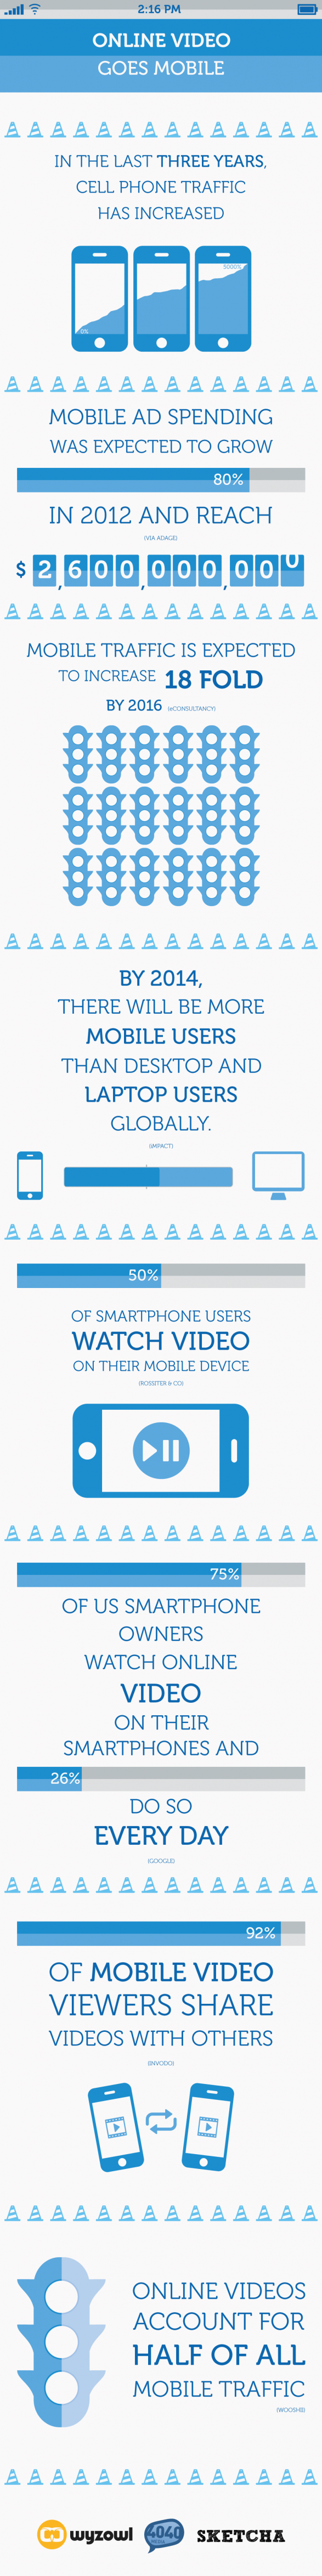 Online Video Goes Mobile